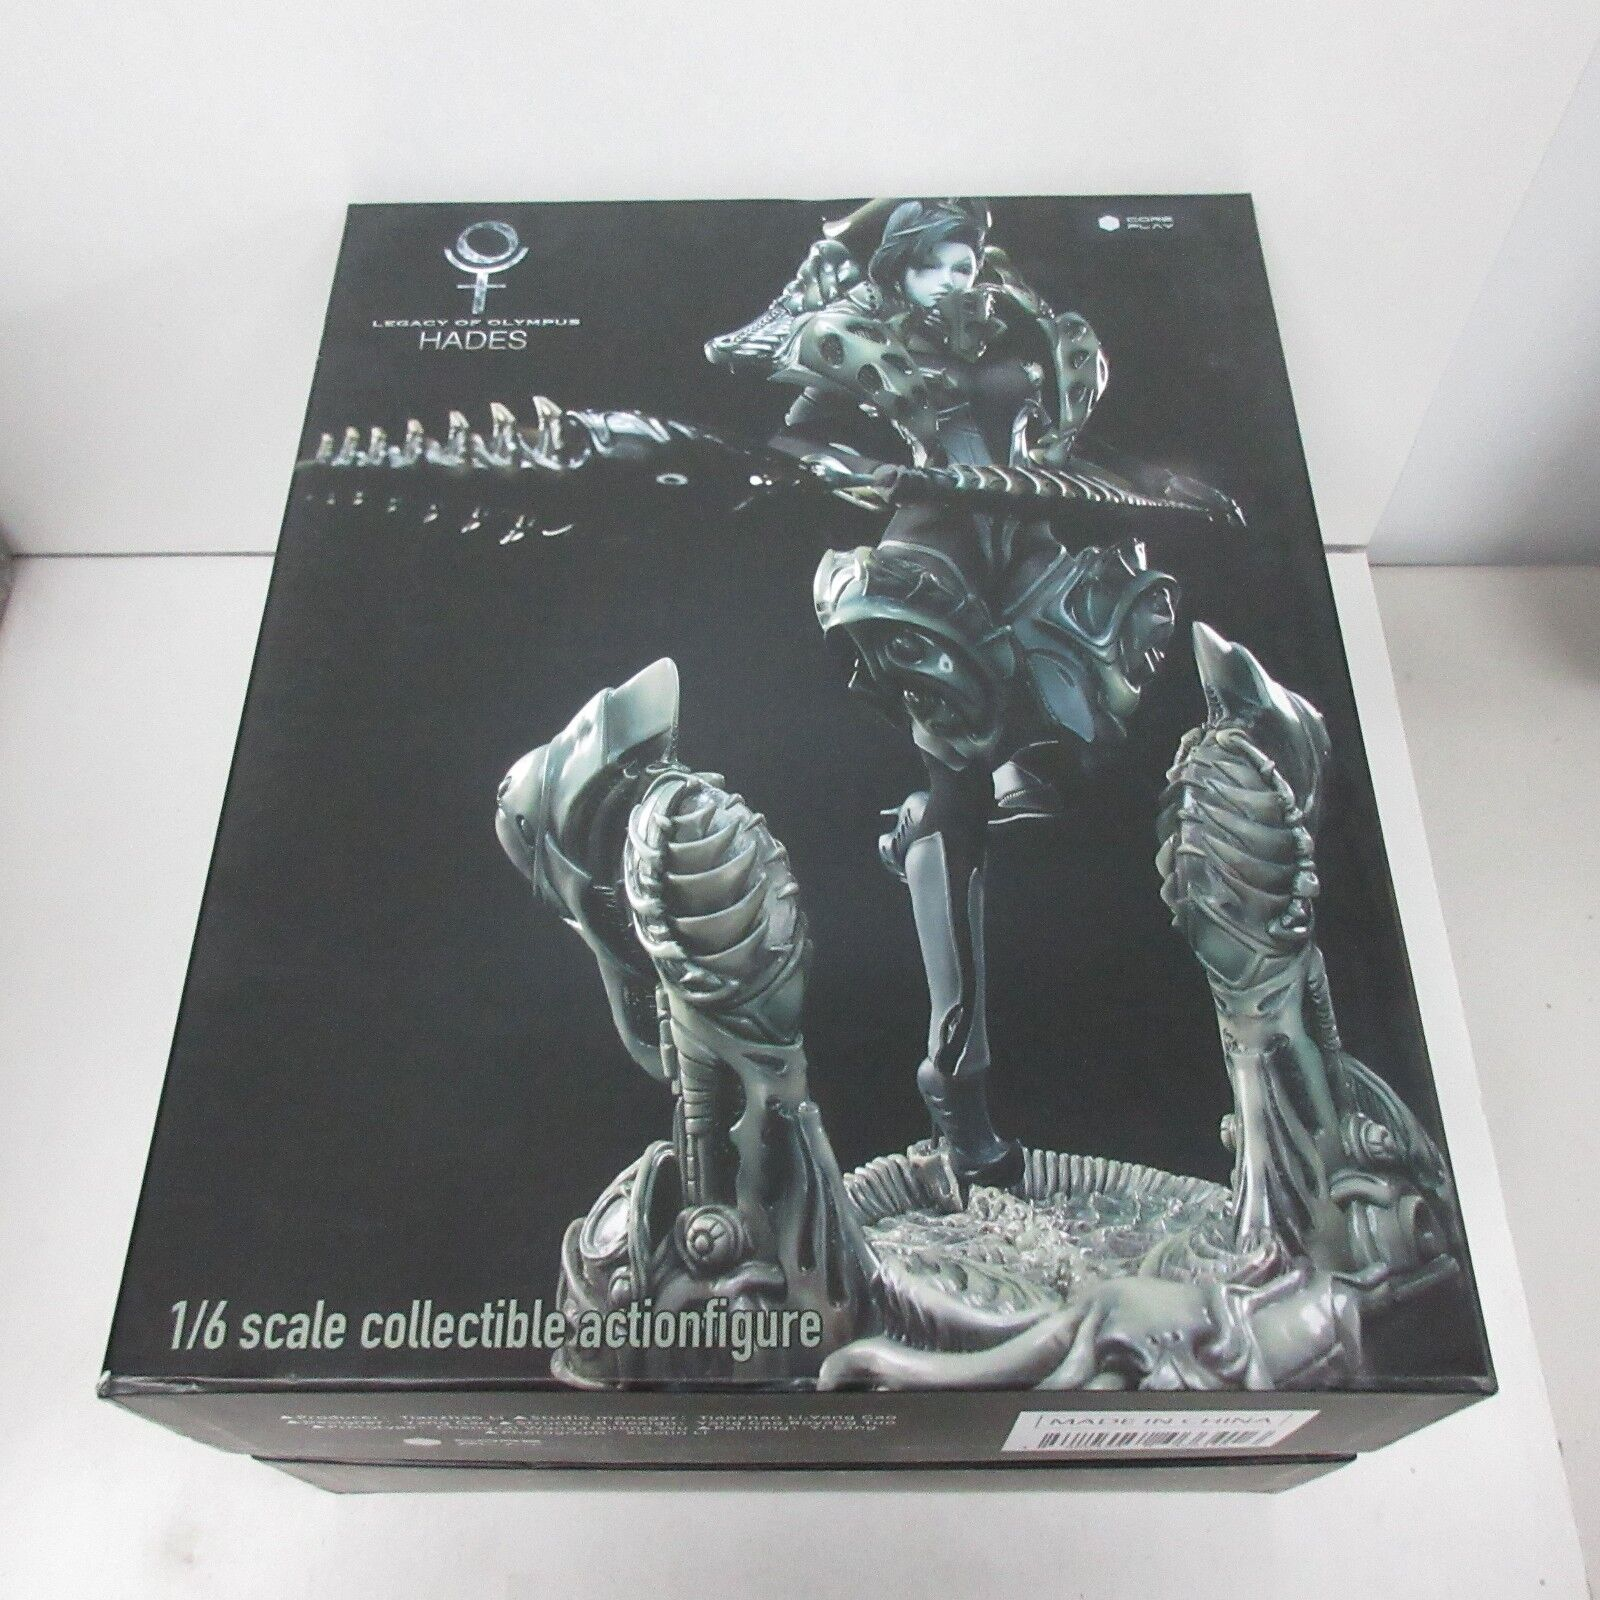 Core Play Legacy of Olympus 1/6 Scale Hades Action Figure